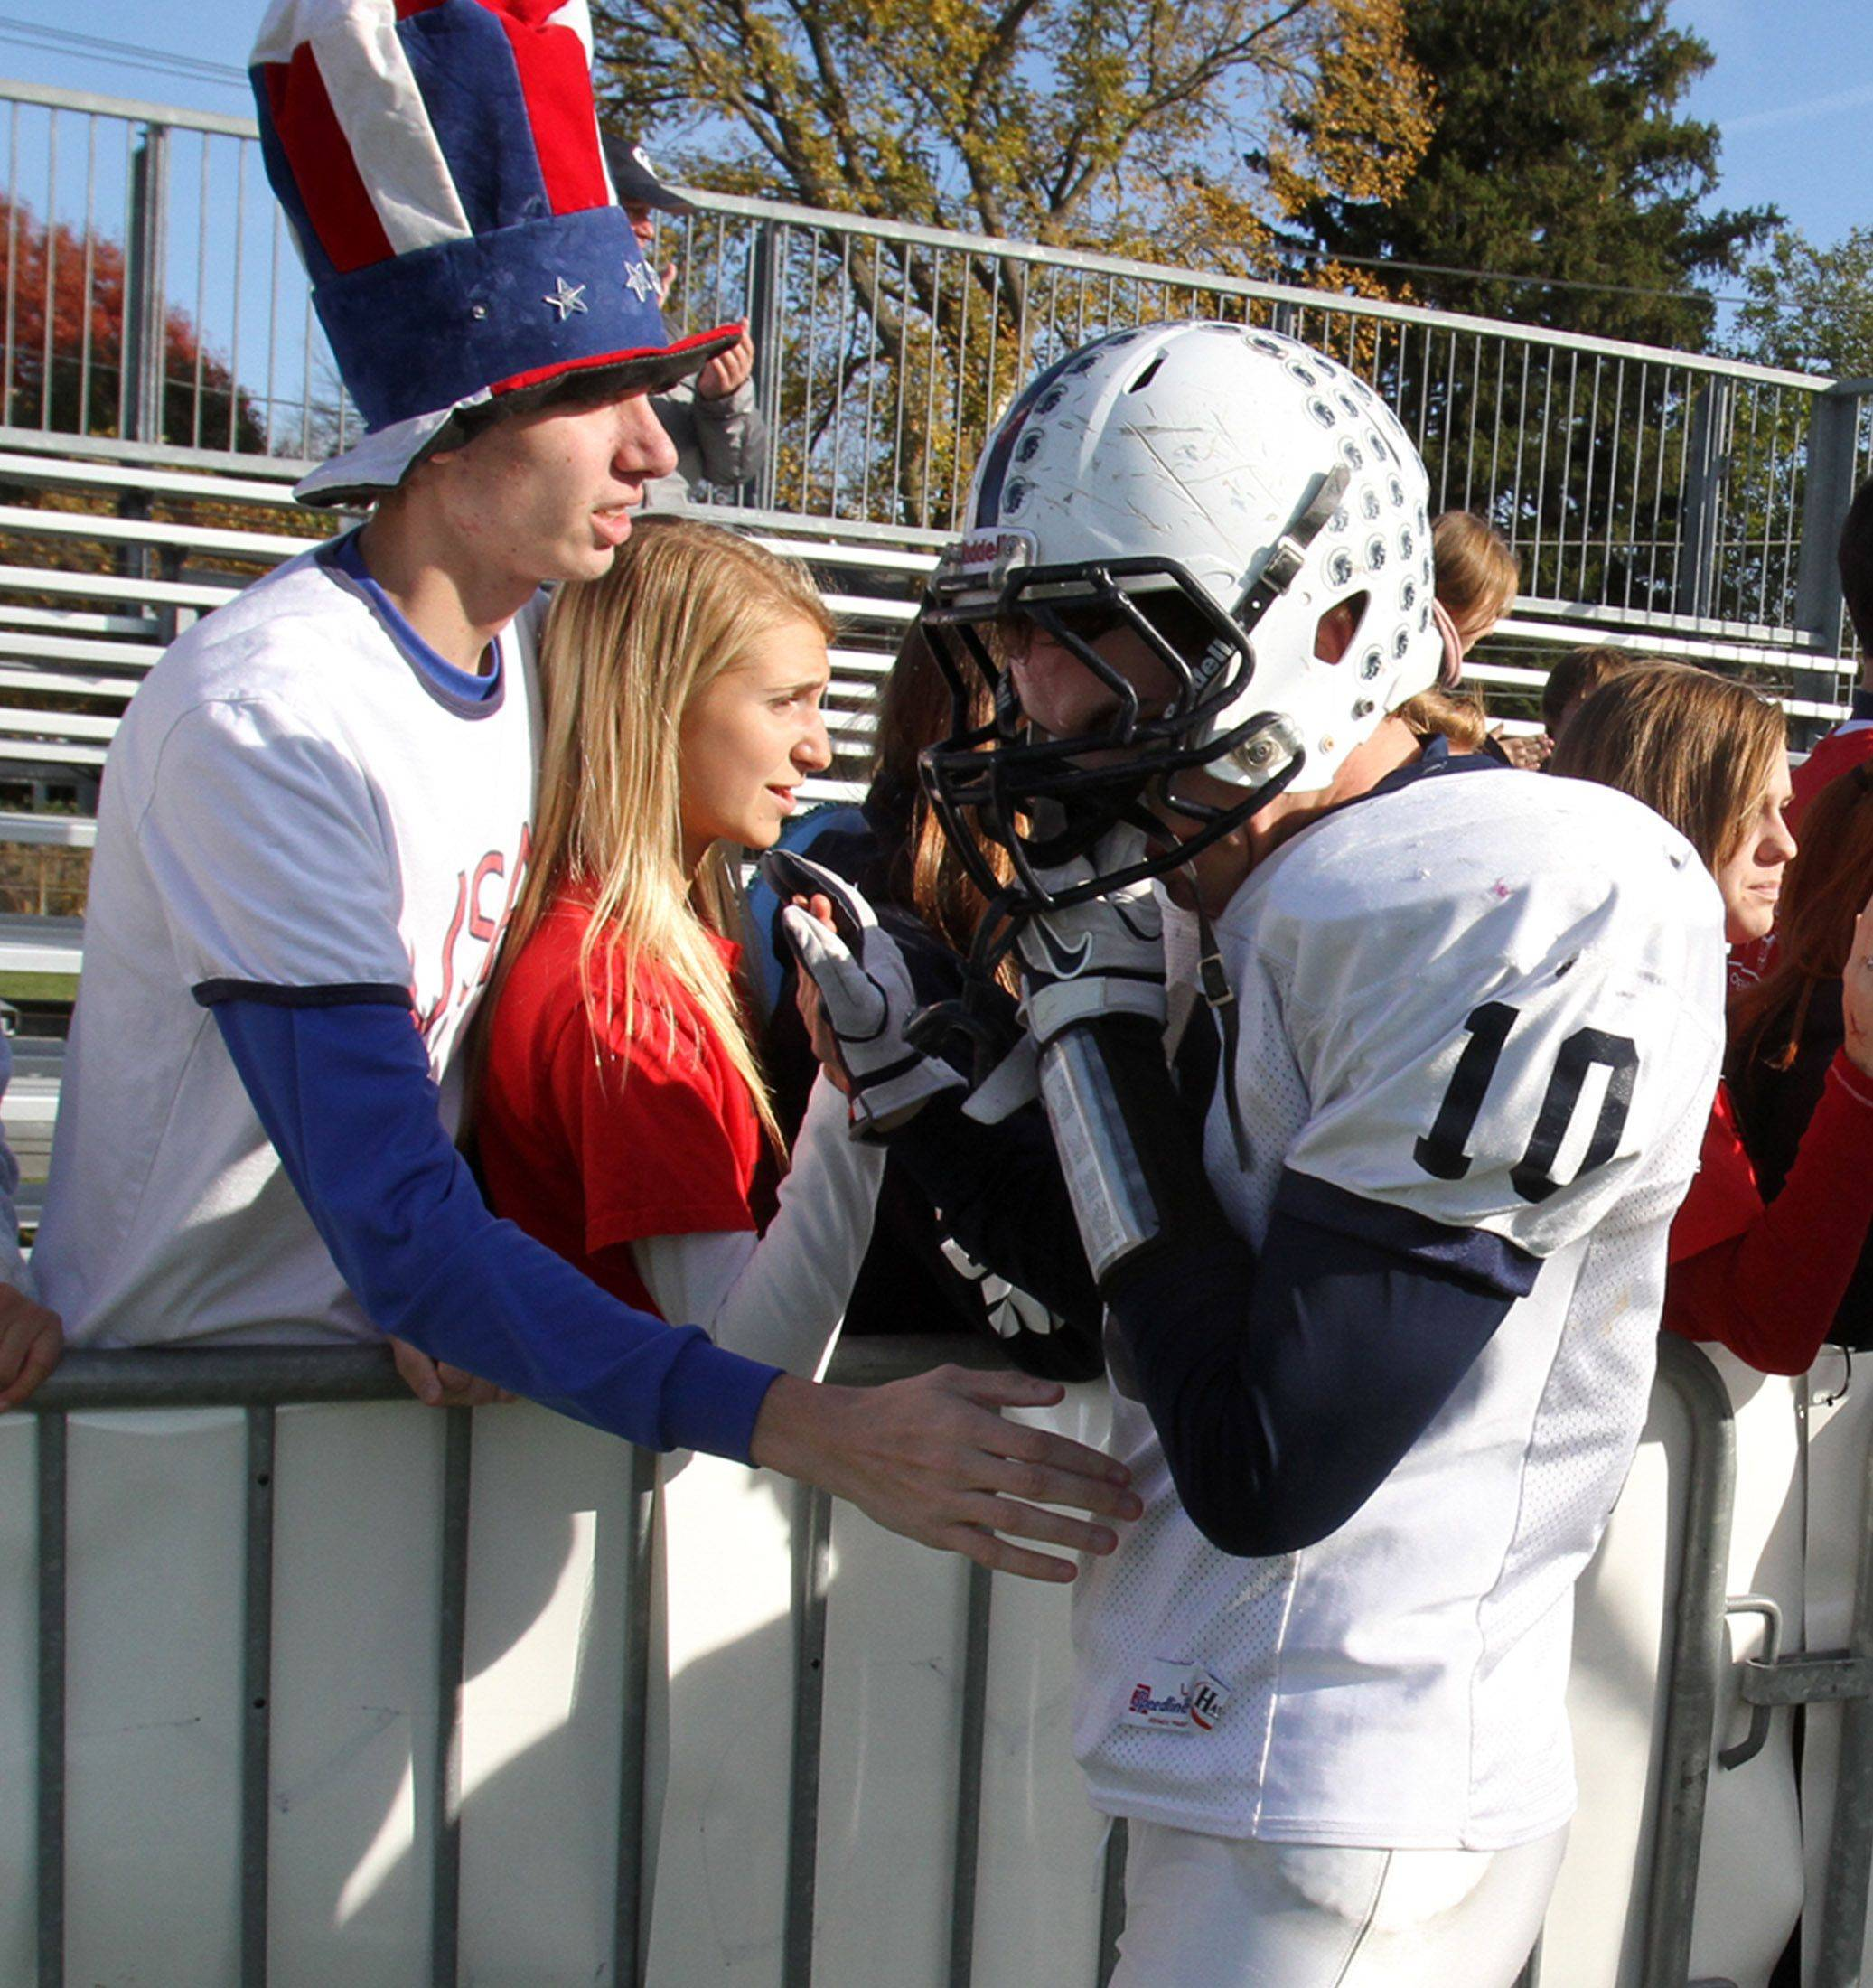 Cary-Grove linebacker Patrick Snell gets a hand from Trojans' fans after C-G's loss to Nazareth Academy on Saturday.